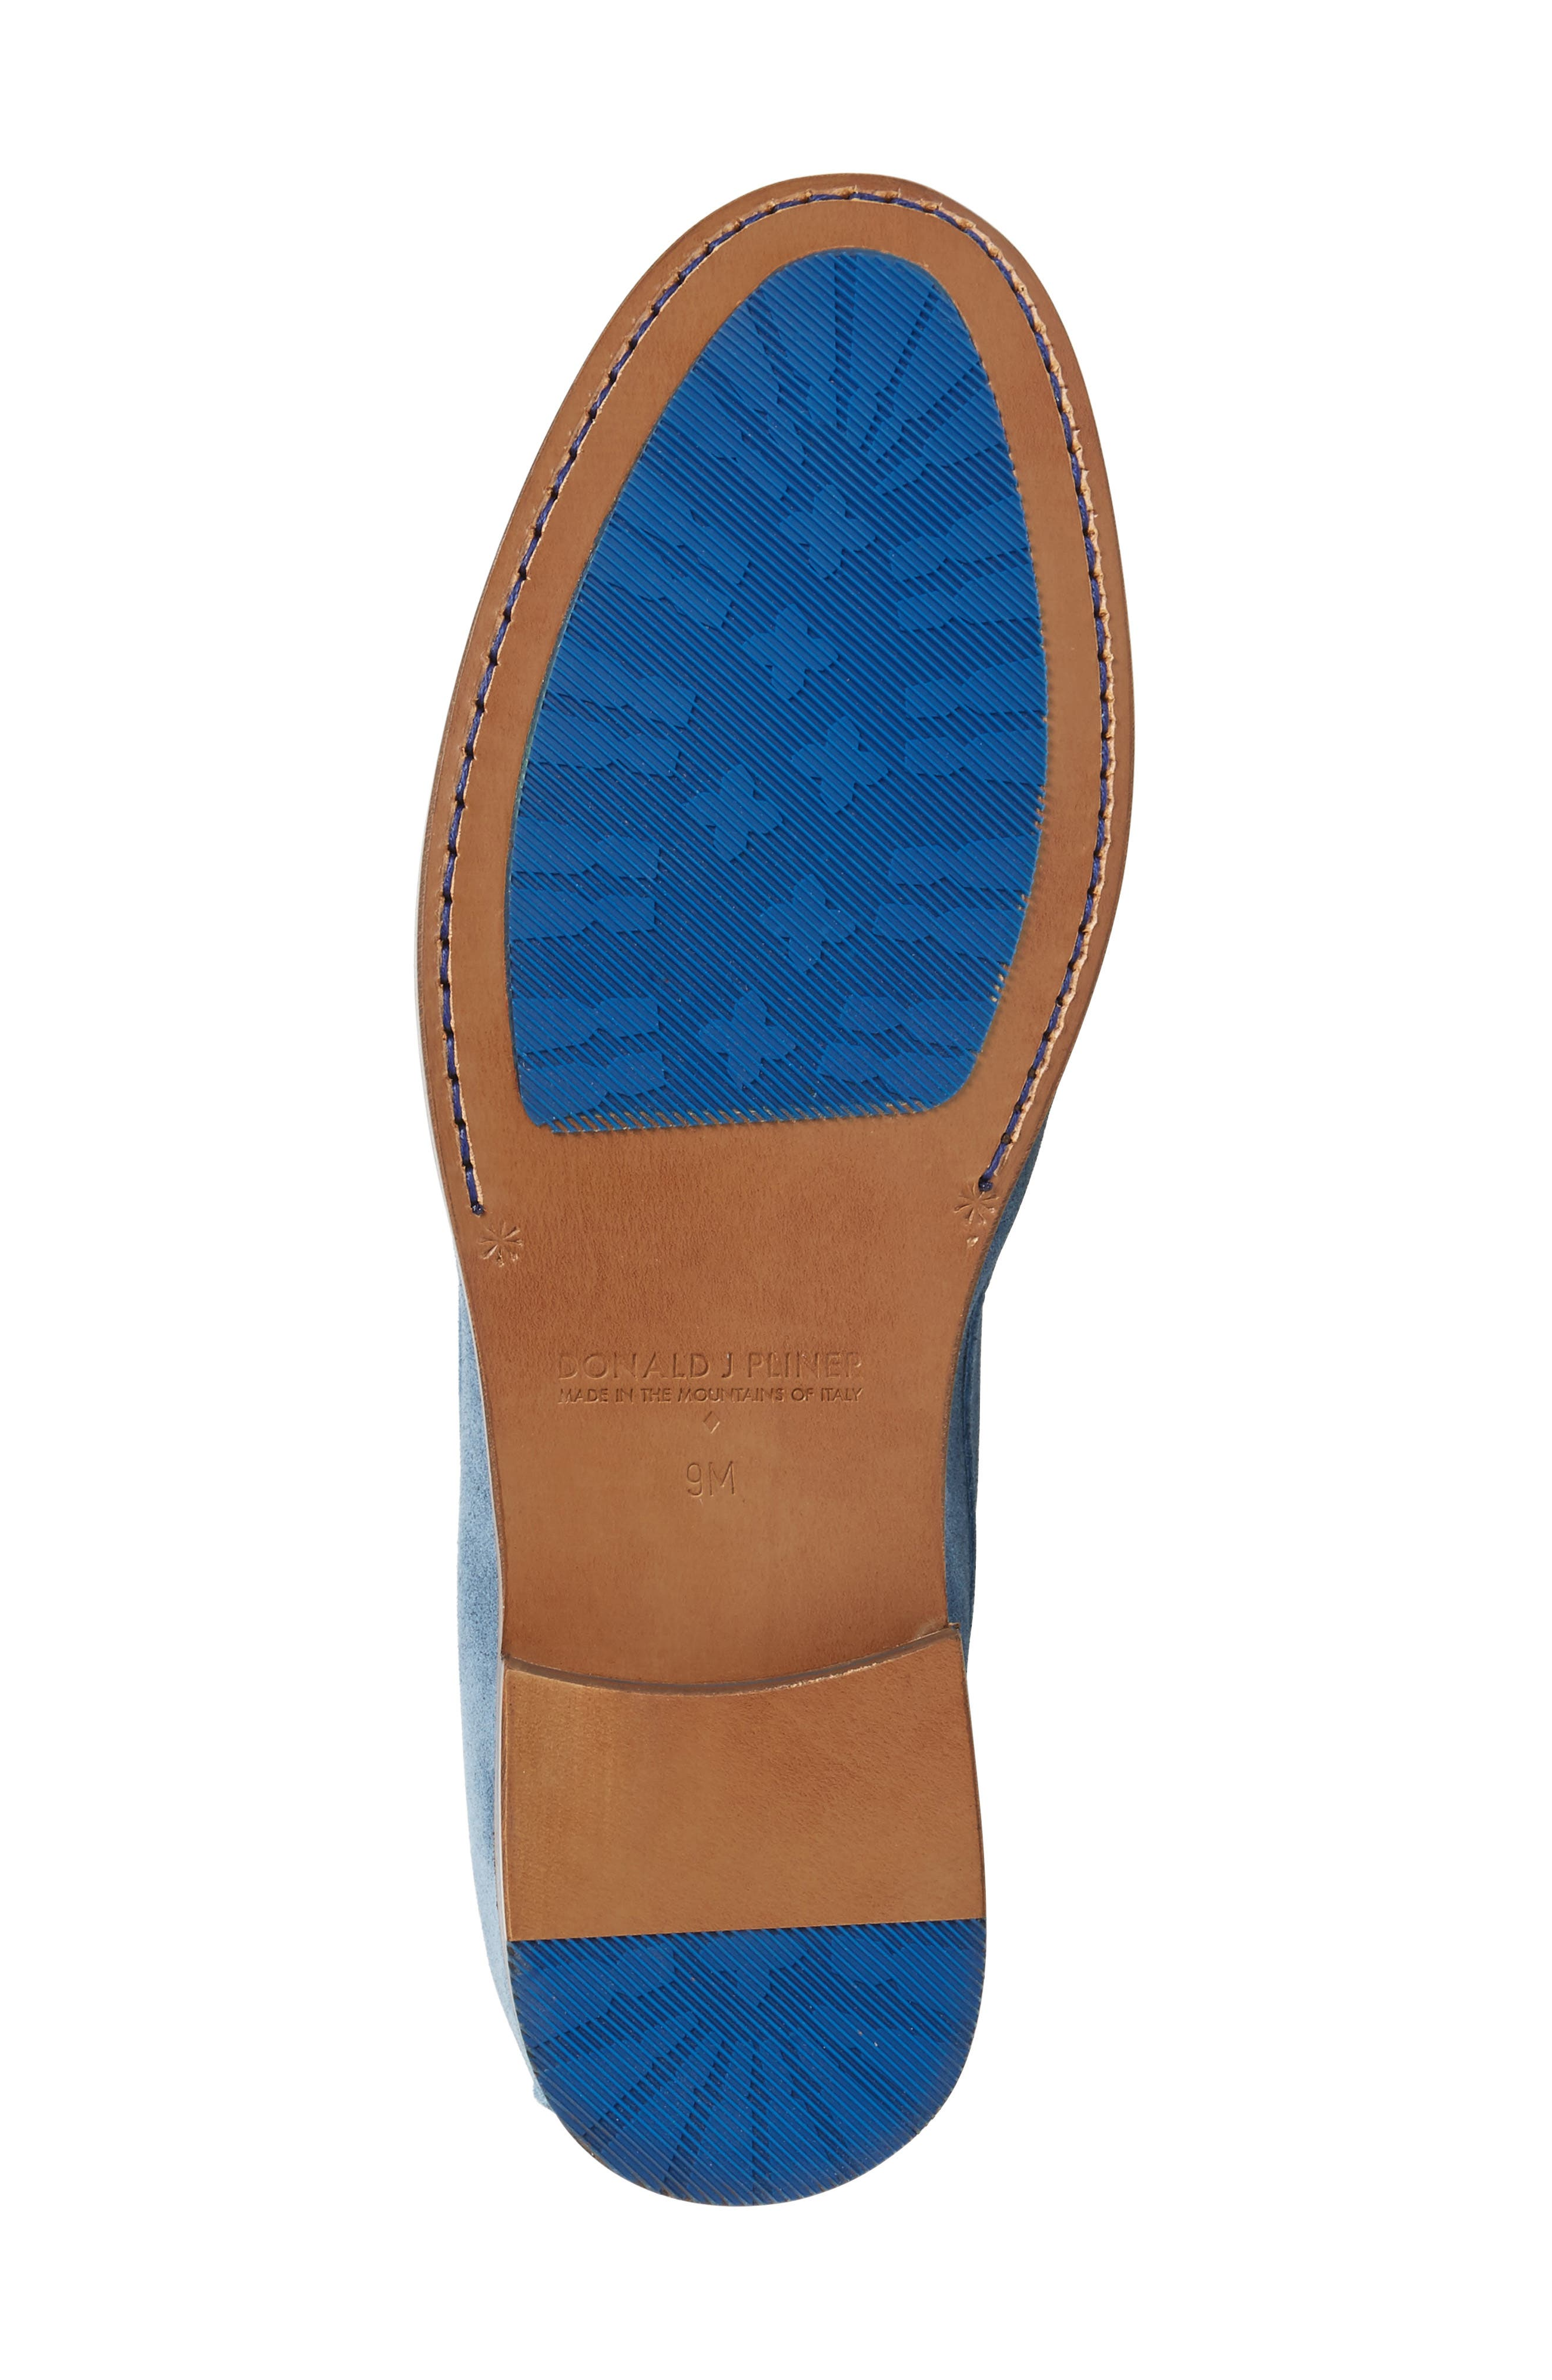 Donald J Pliner 'Nate' Loafer,                             Alternate thumbnail 19, color,